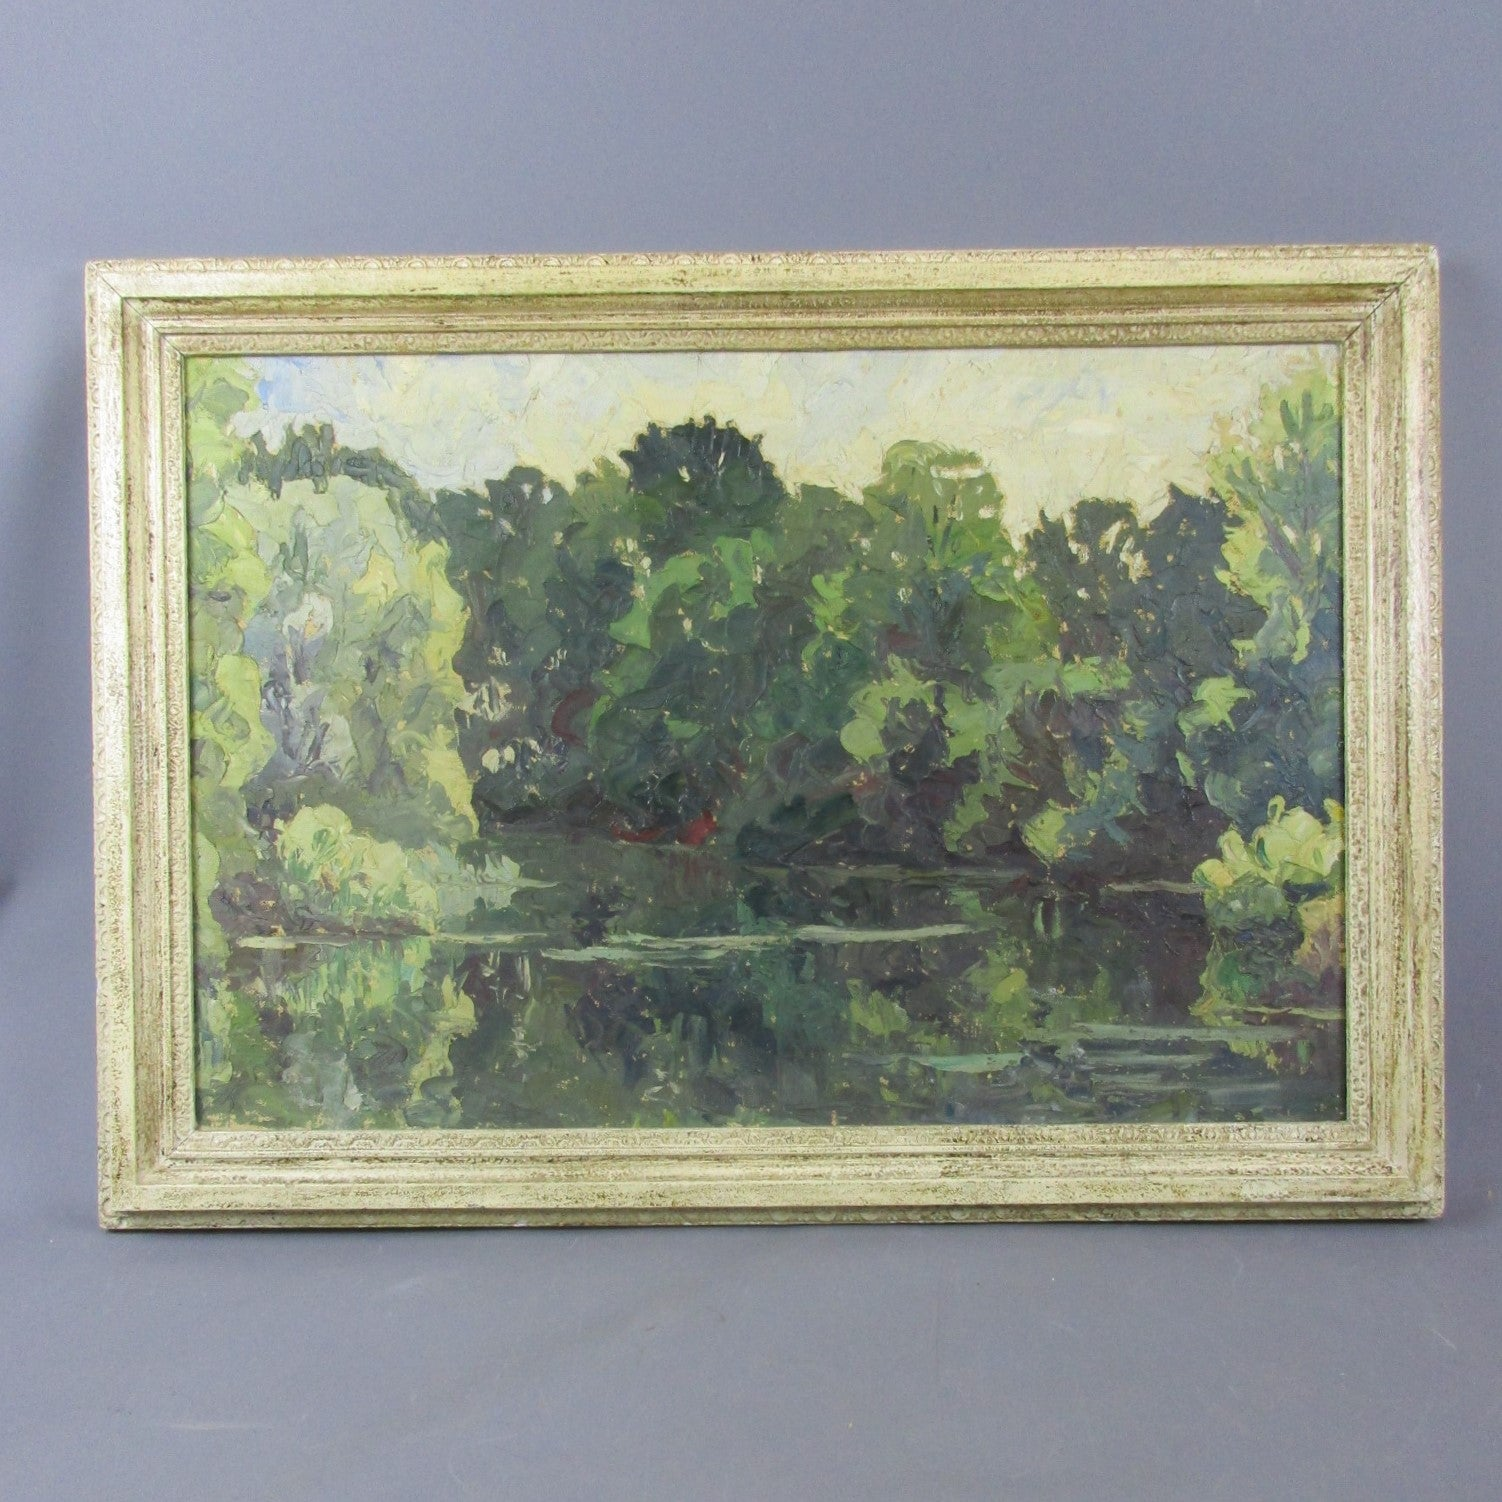 Large Oil on Canvas River Landscape by Elliot Seabrooke Vintage c1930